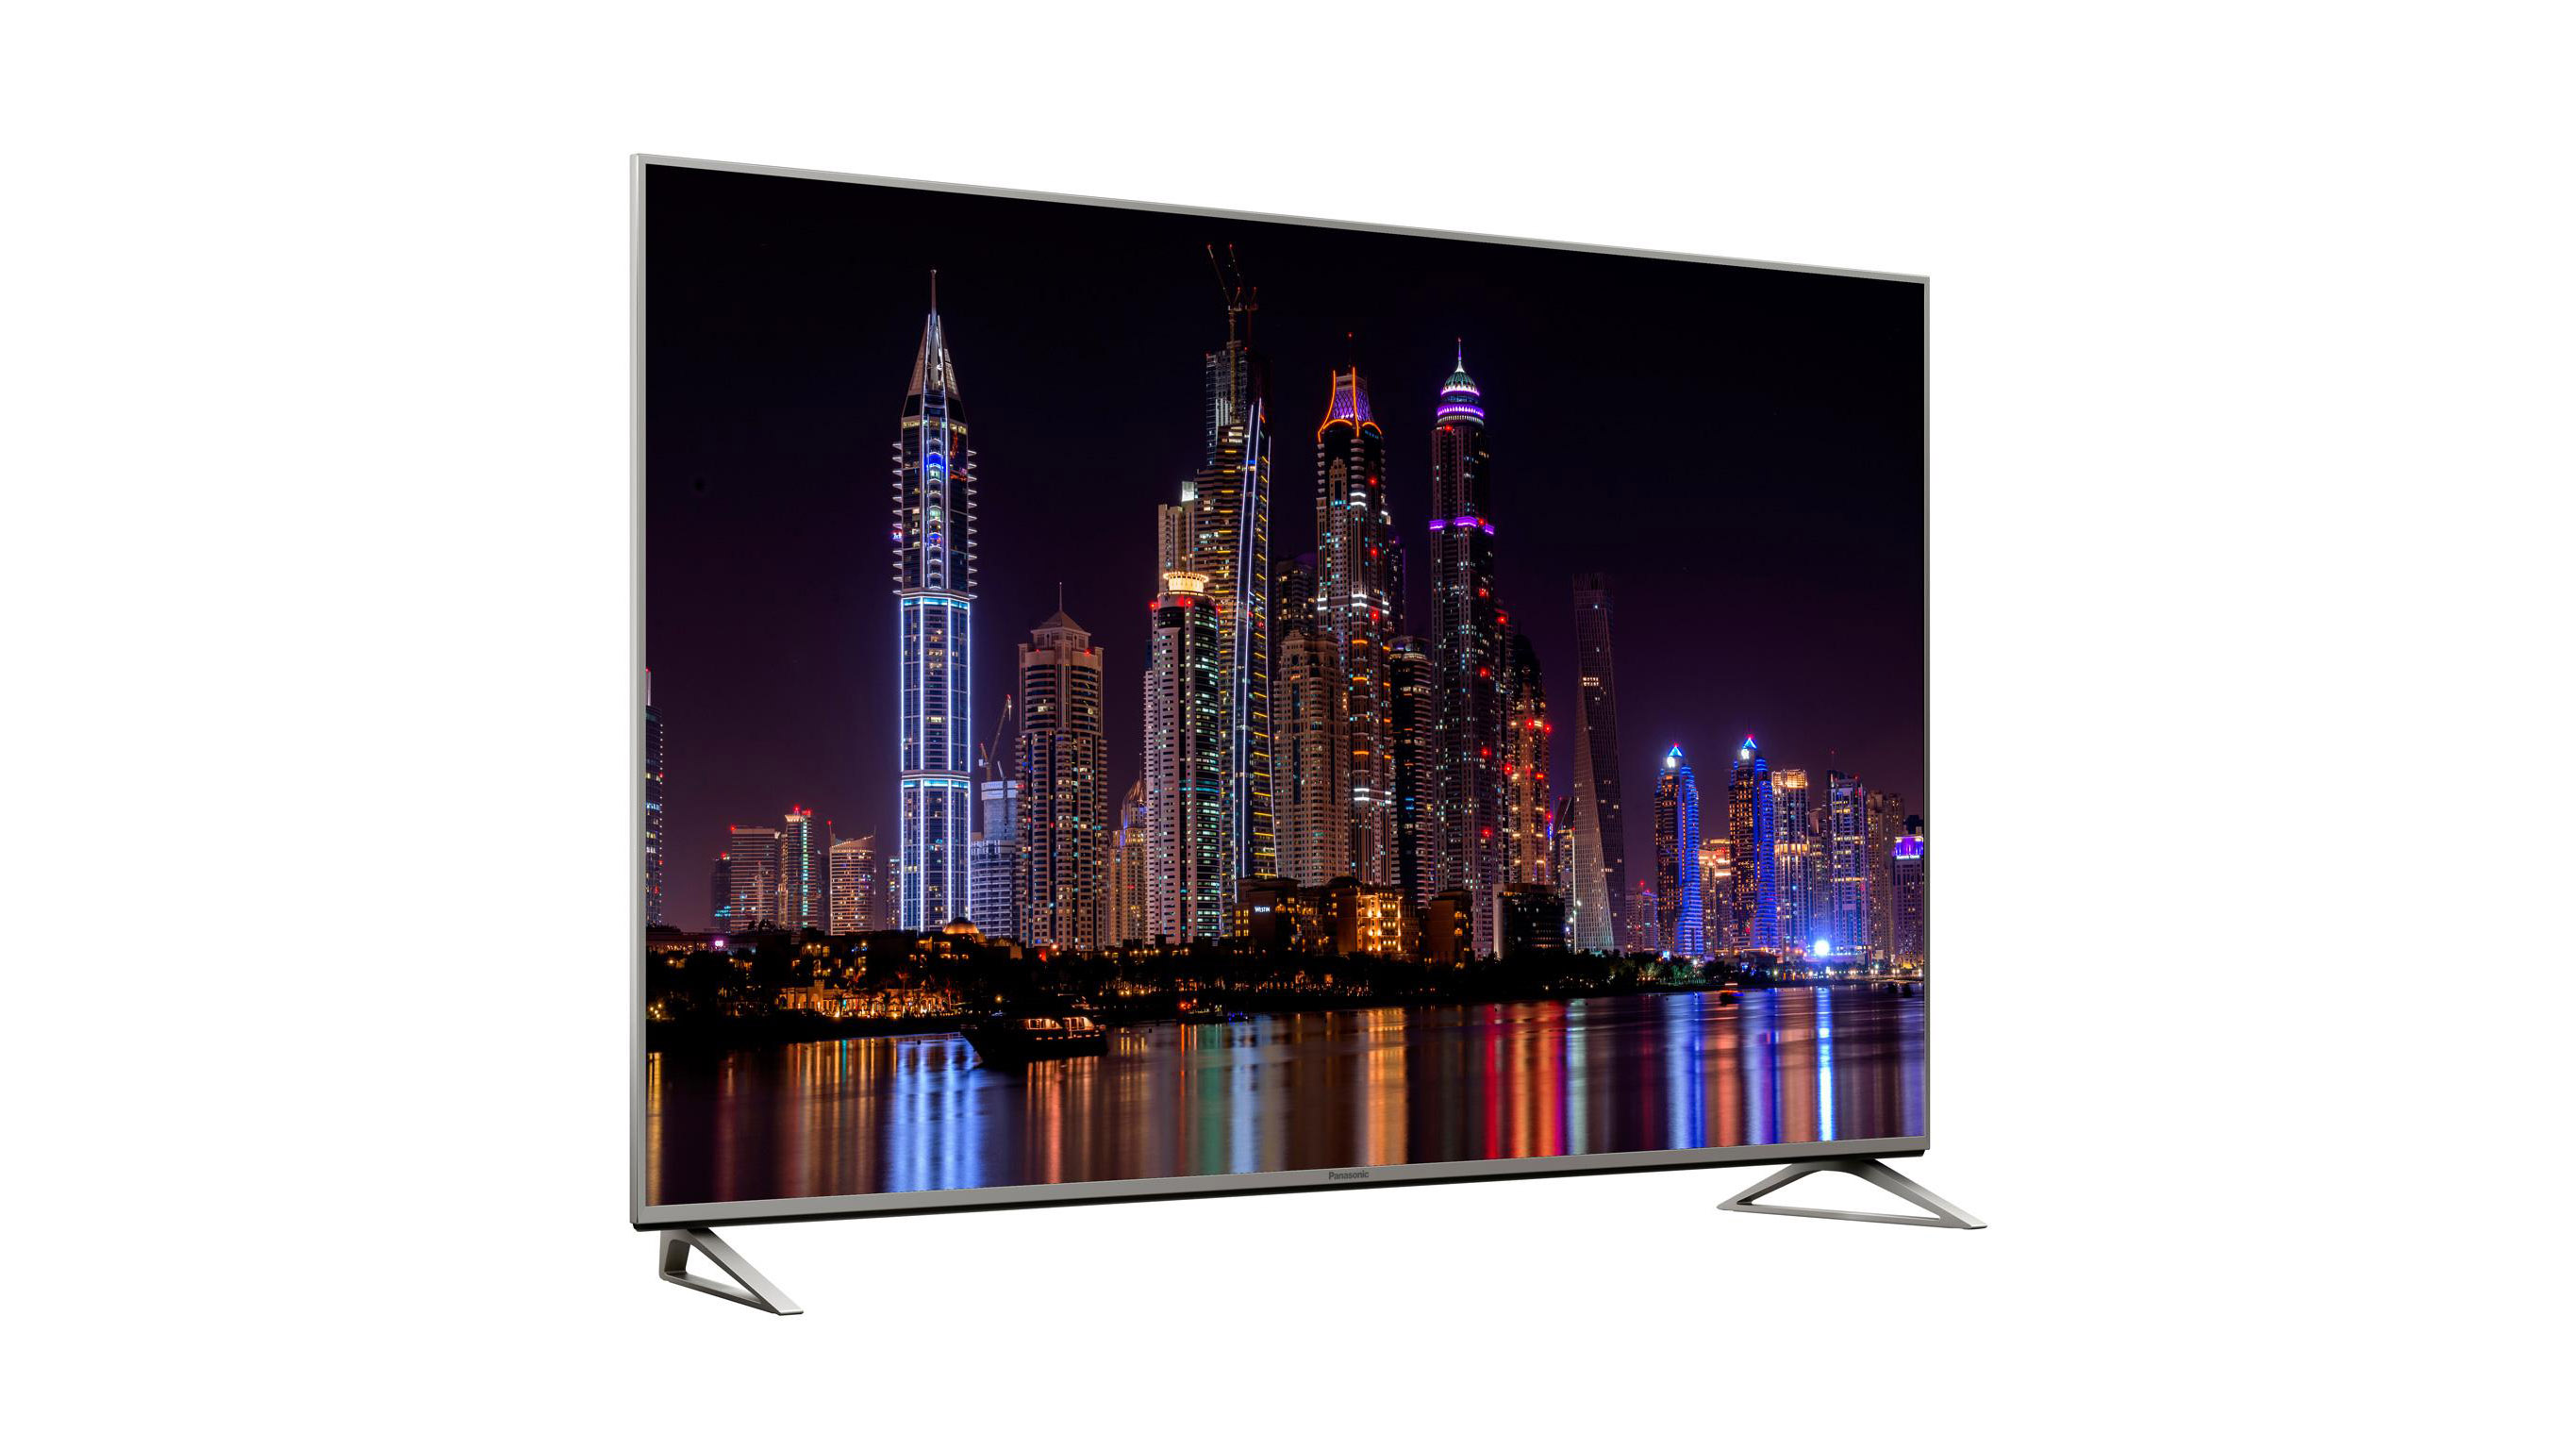 panasonic tv 40 inch. panasonic tx-40dx700b angle tv 40 inch